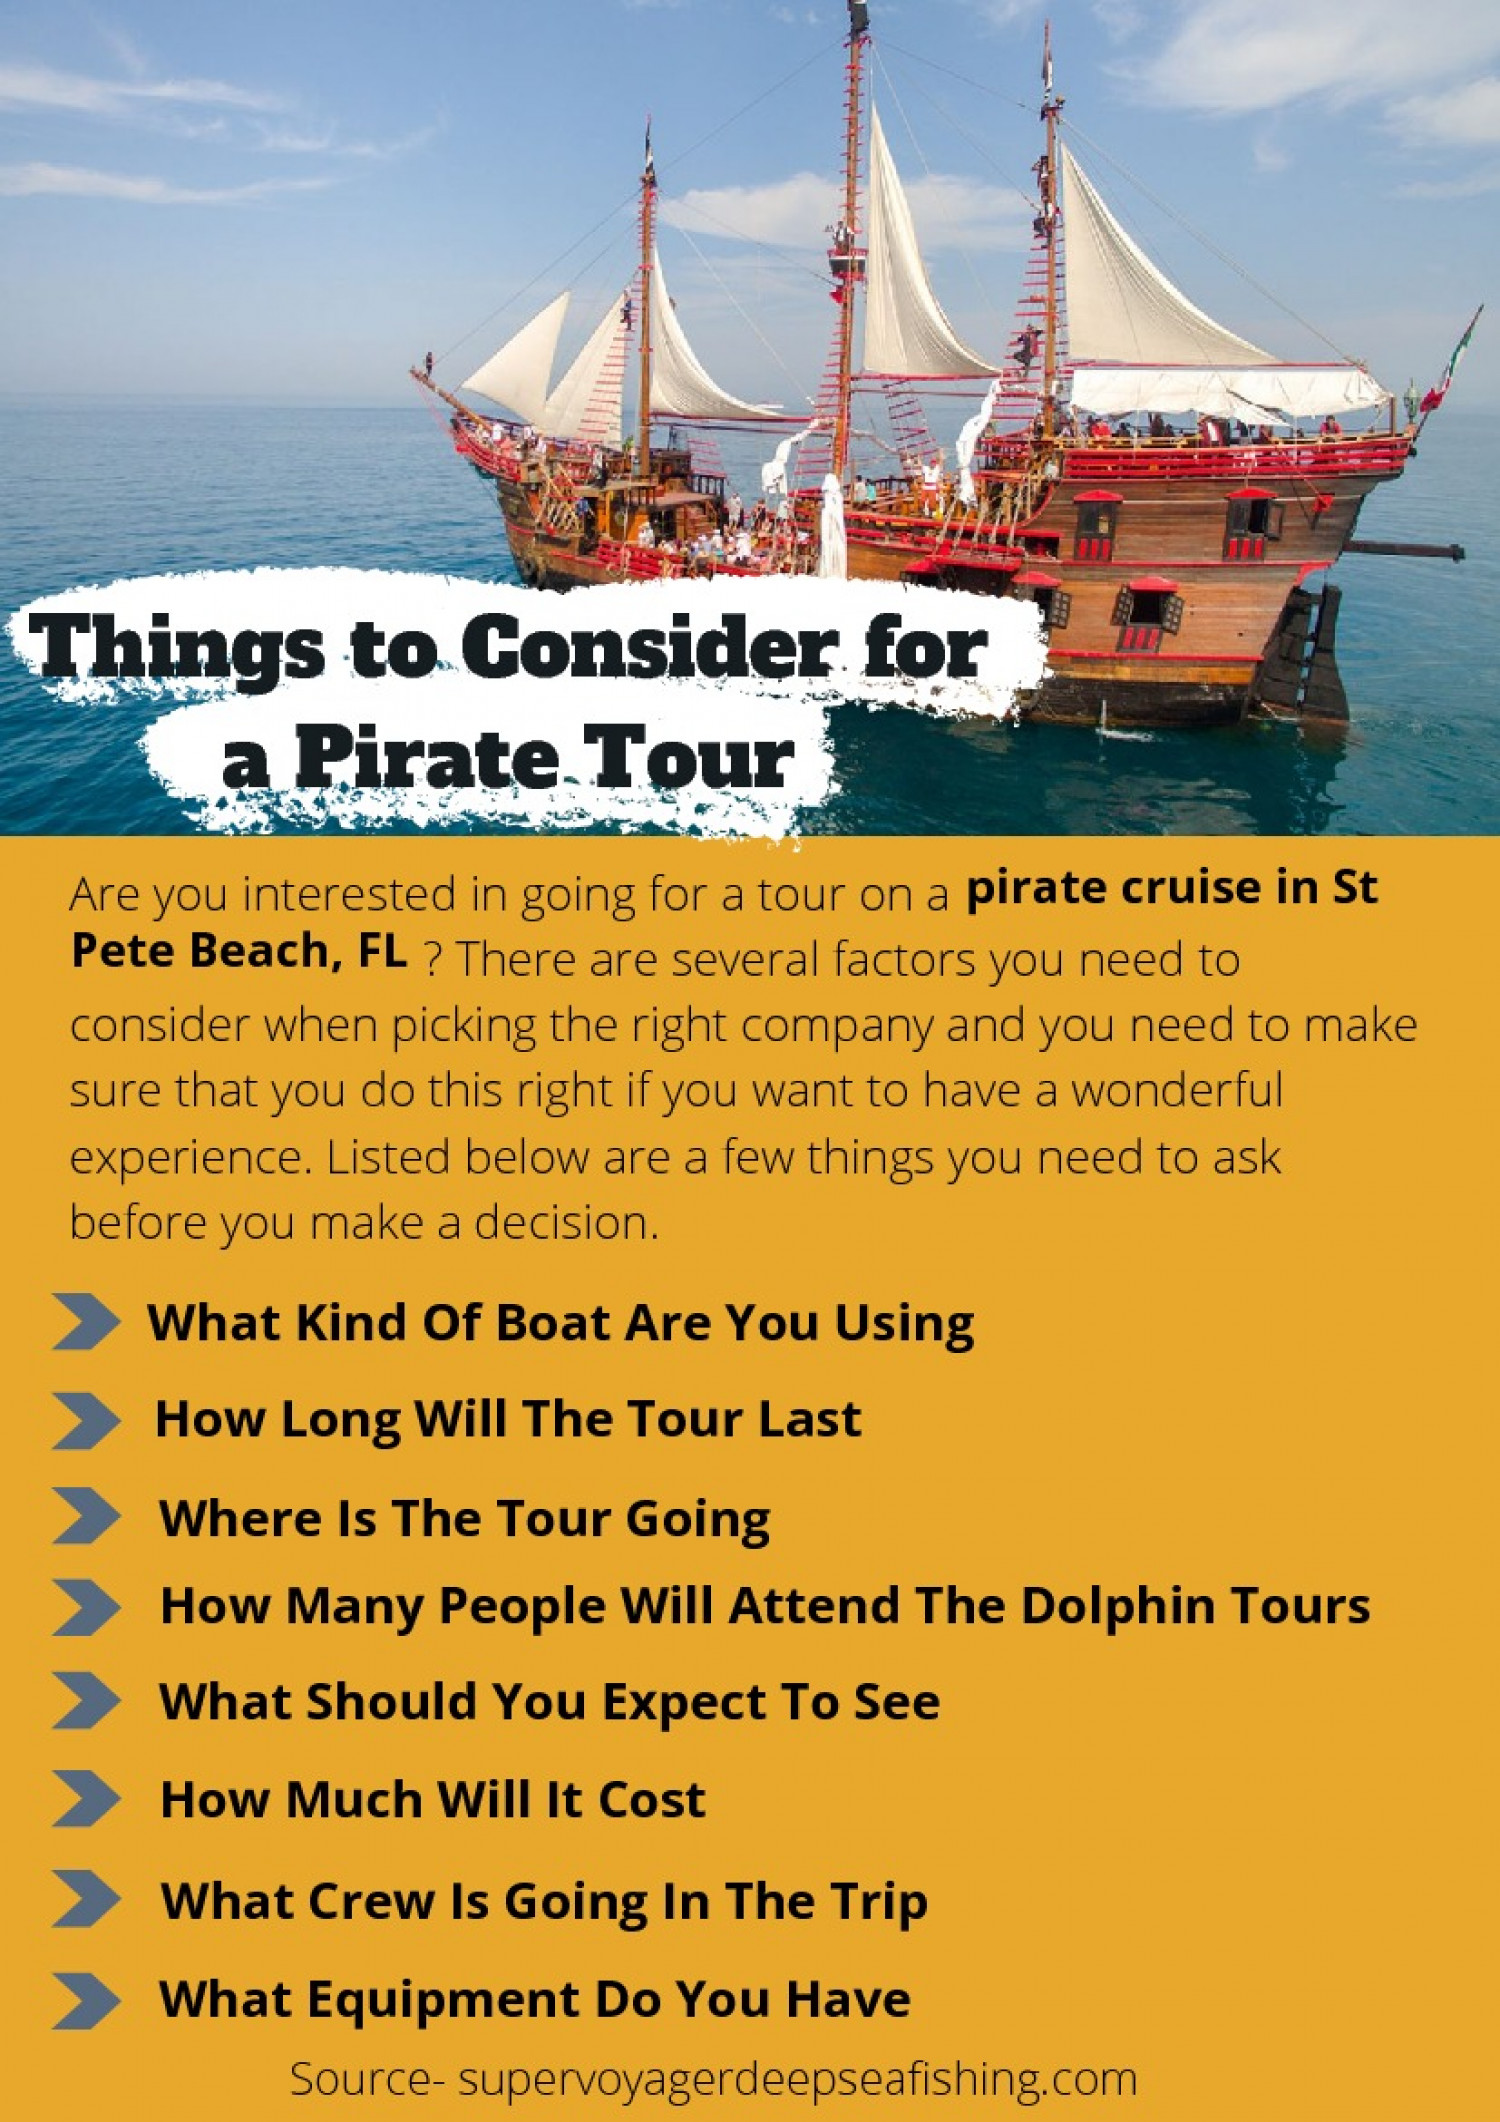 Things to Consider for a Pirate Tour Infographic